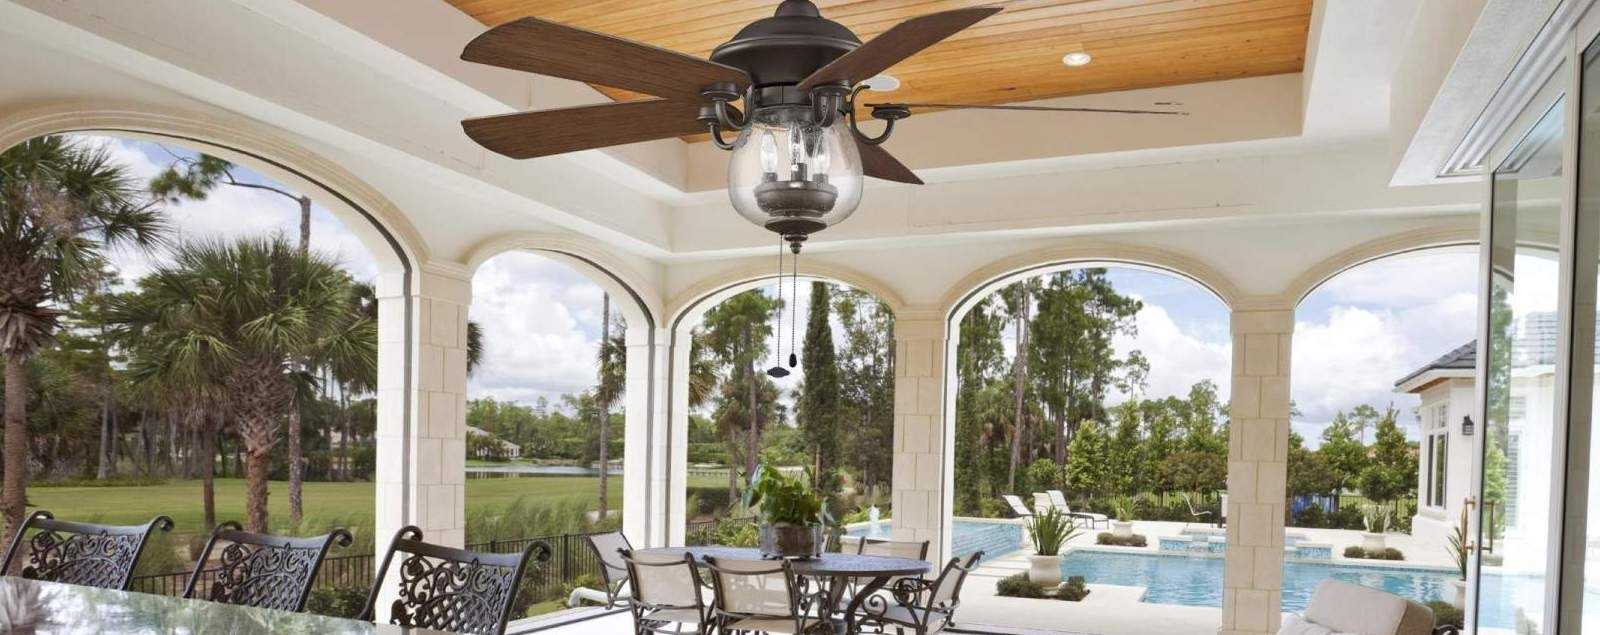 Famous Outdoor Ceiling Fans For Coastal Areas Within Outdoor Ceiling Fans – Shop Wet, Dry, And Damp Rated Outdoor Fans (View 7 of 20)